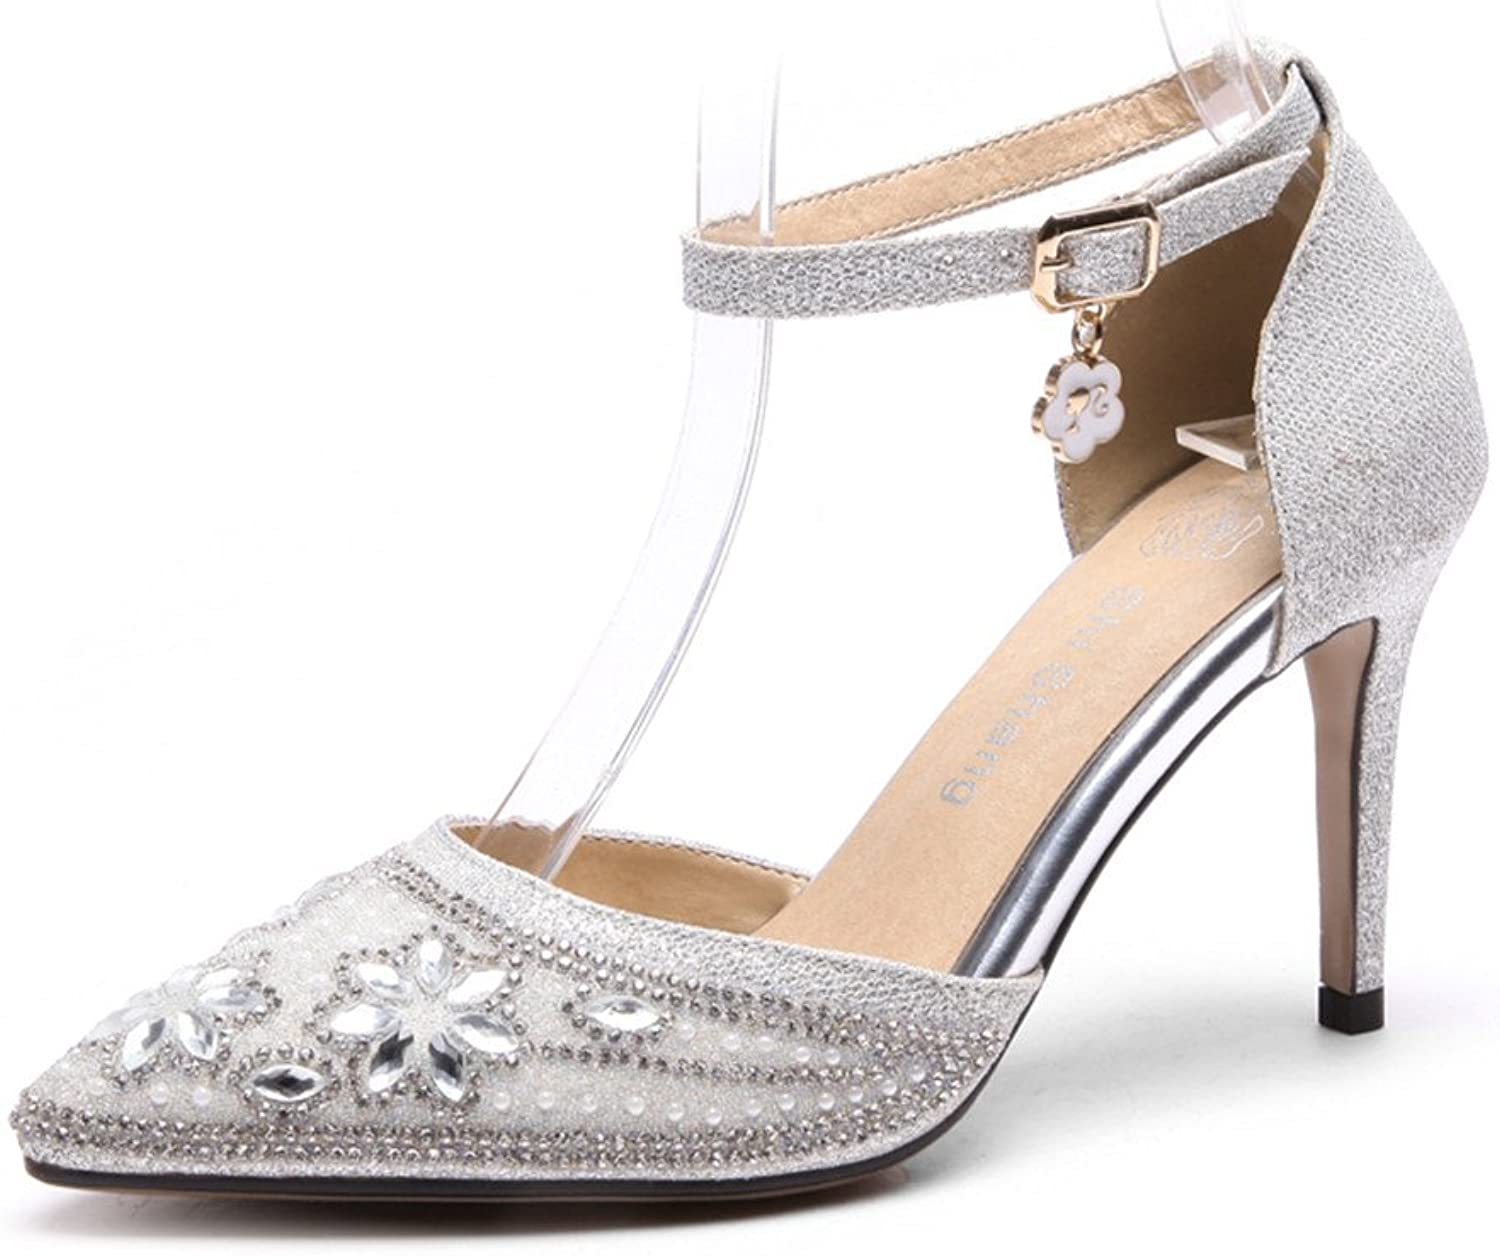 AnMengXinLing Ankle Strap Pumps Womens Rhinestone Crystals Pointed Toe Stiletto Bridal Wedding Luxury D'Orsay shoes